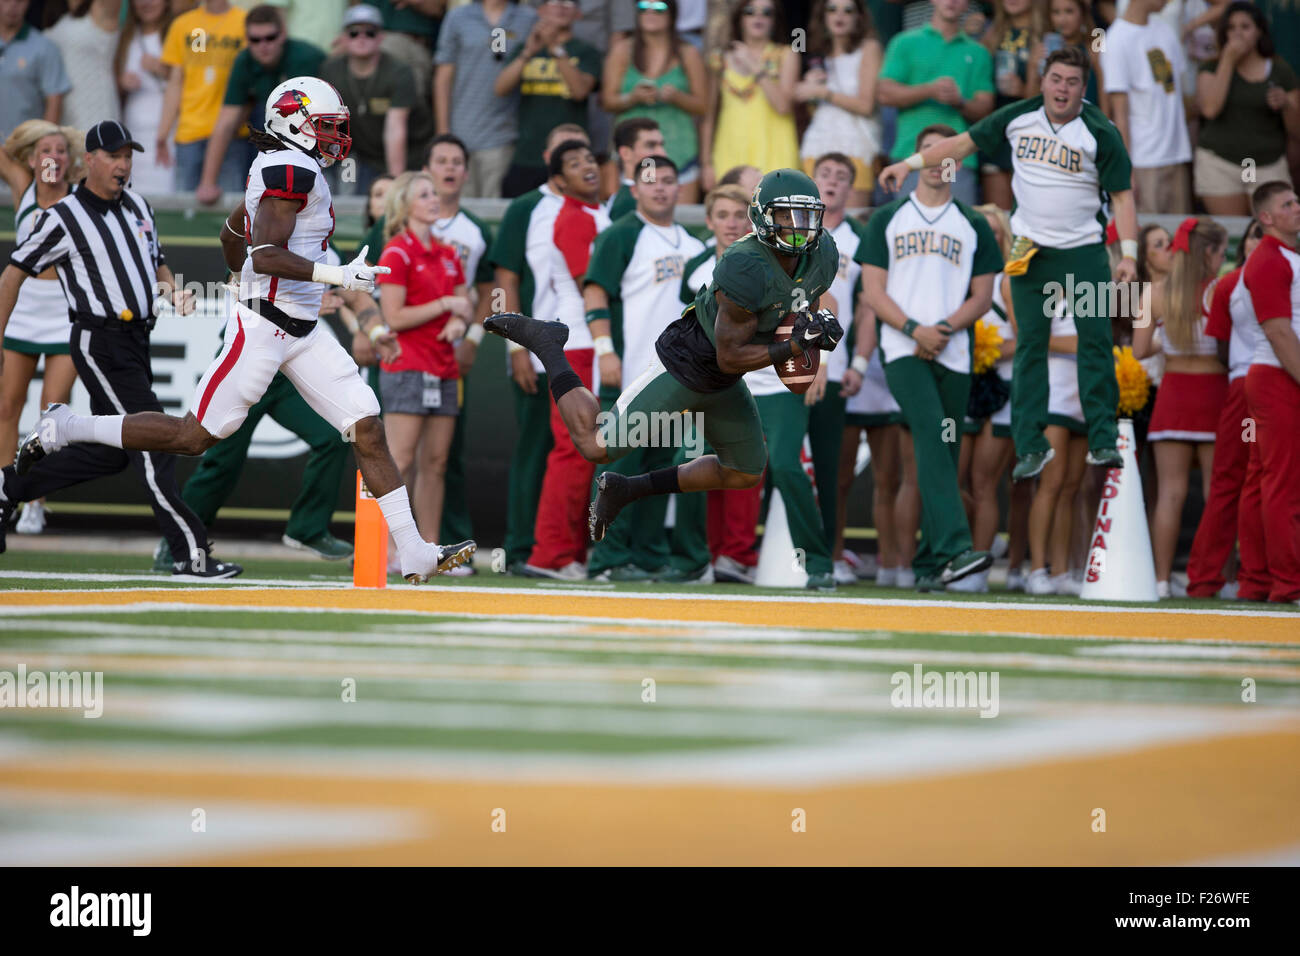 Waco, TX, USA. 12th Sep, 2015. Baylor Bears wide receiver Corey Coleman #1 completes reception for touchdownduring Stock Photo